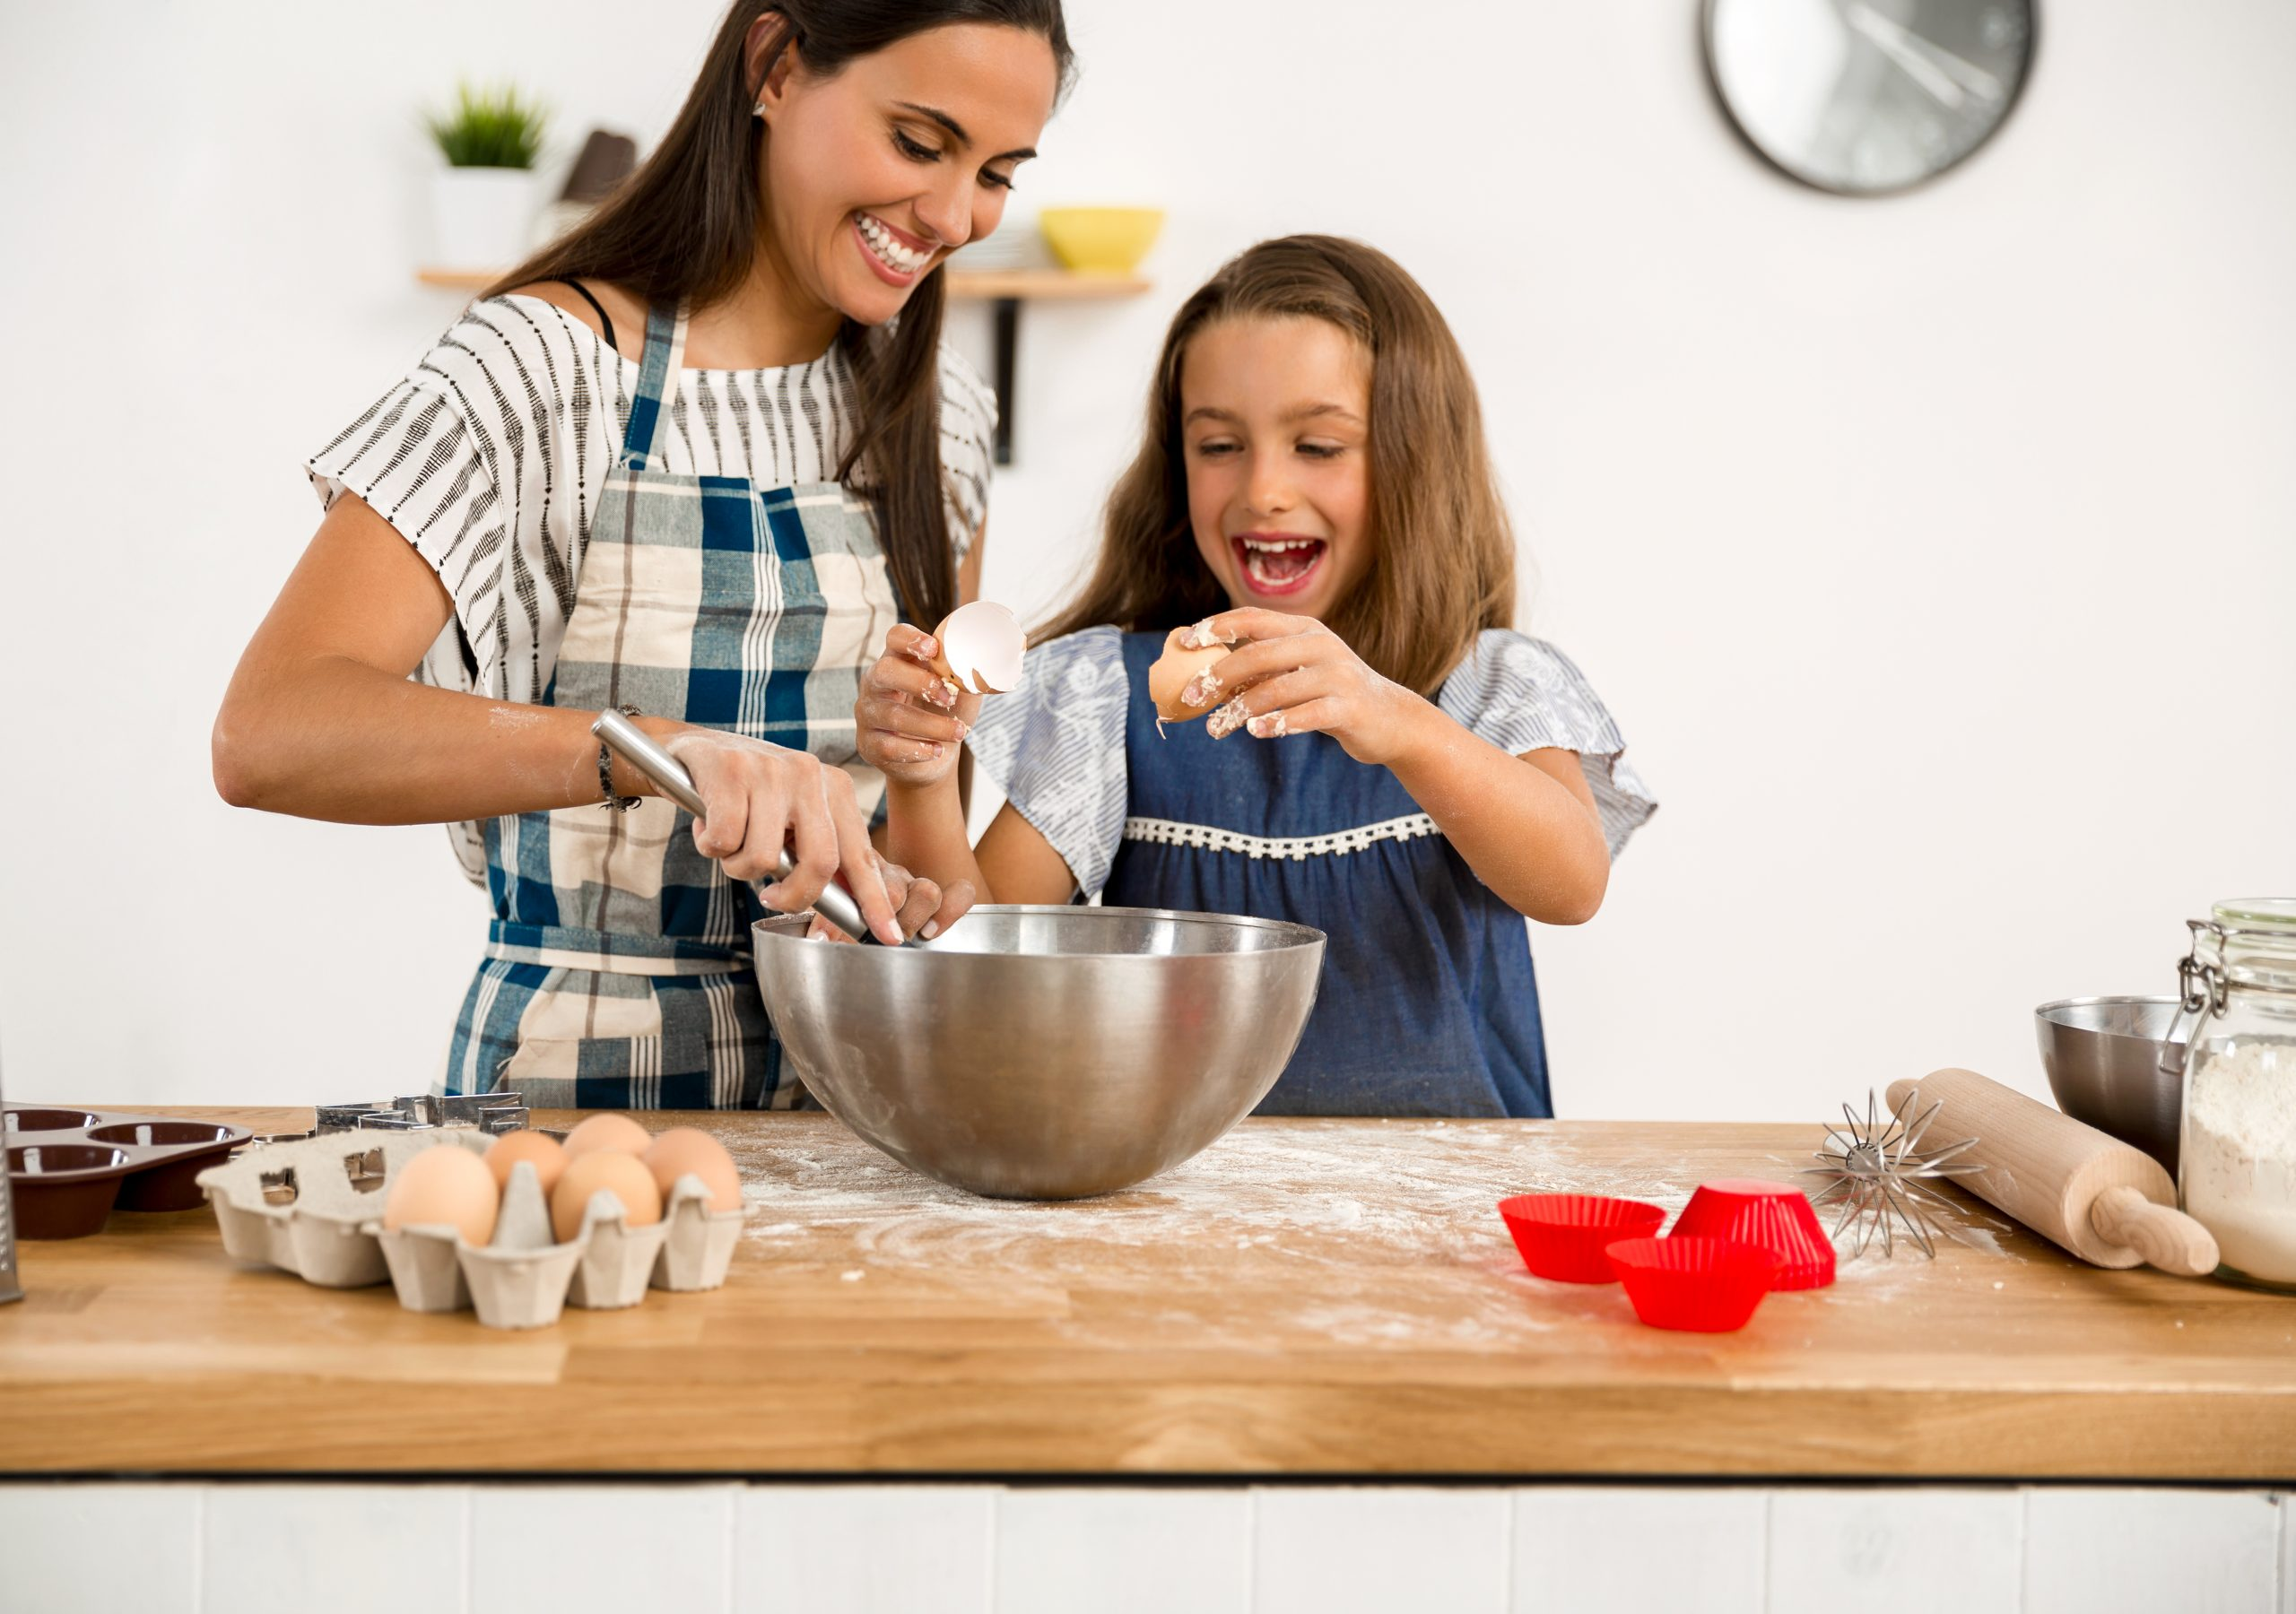 7 Easiest Desserts That Even Your Kids Can Make